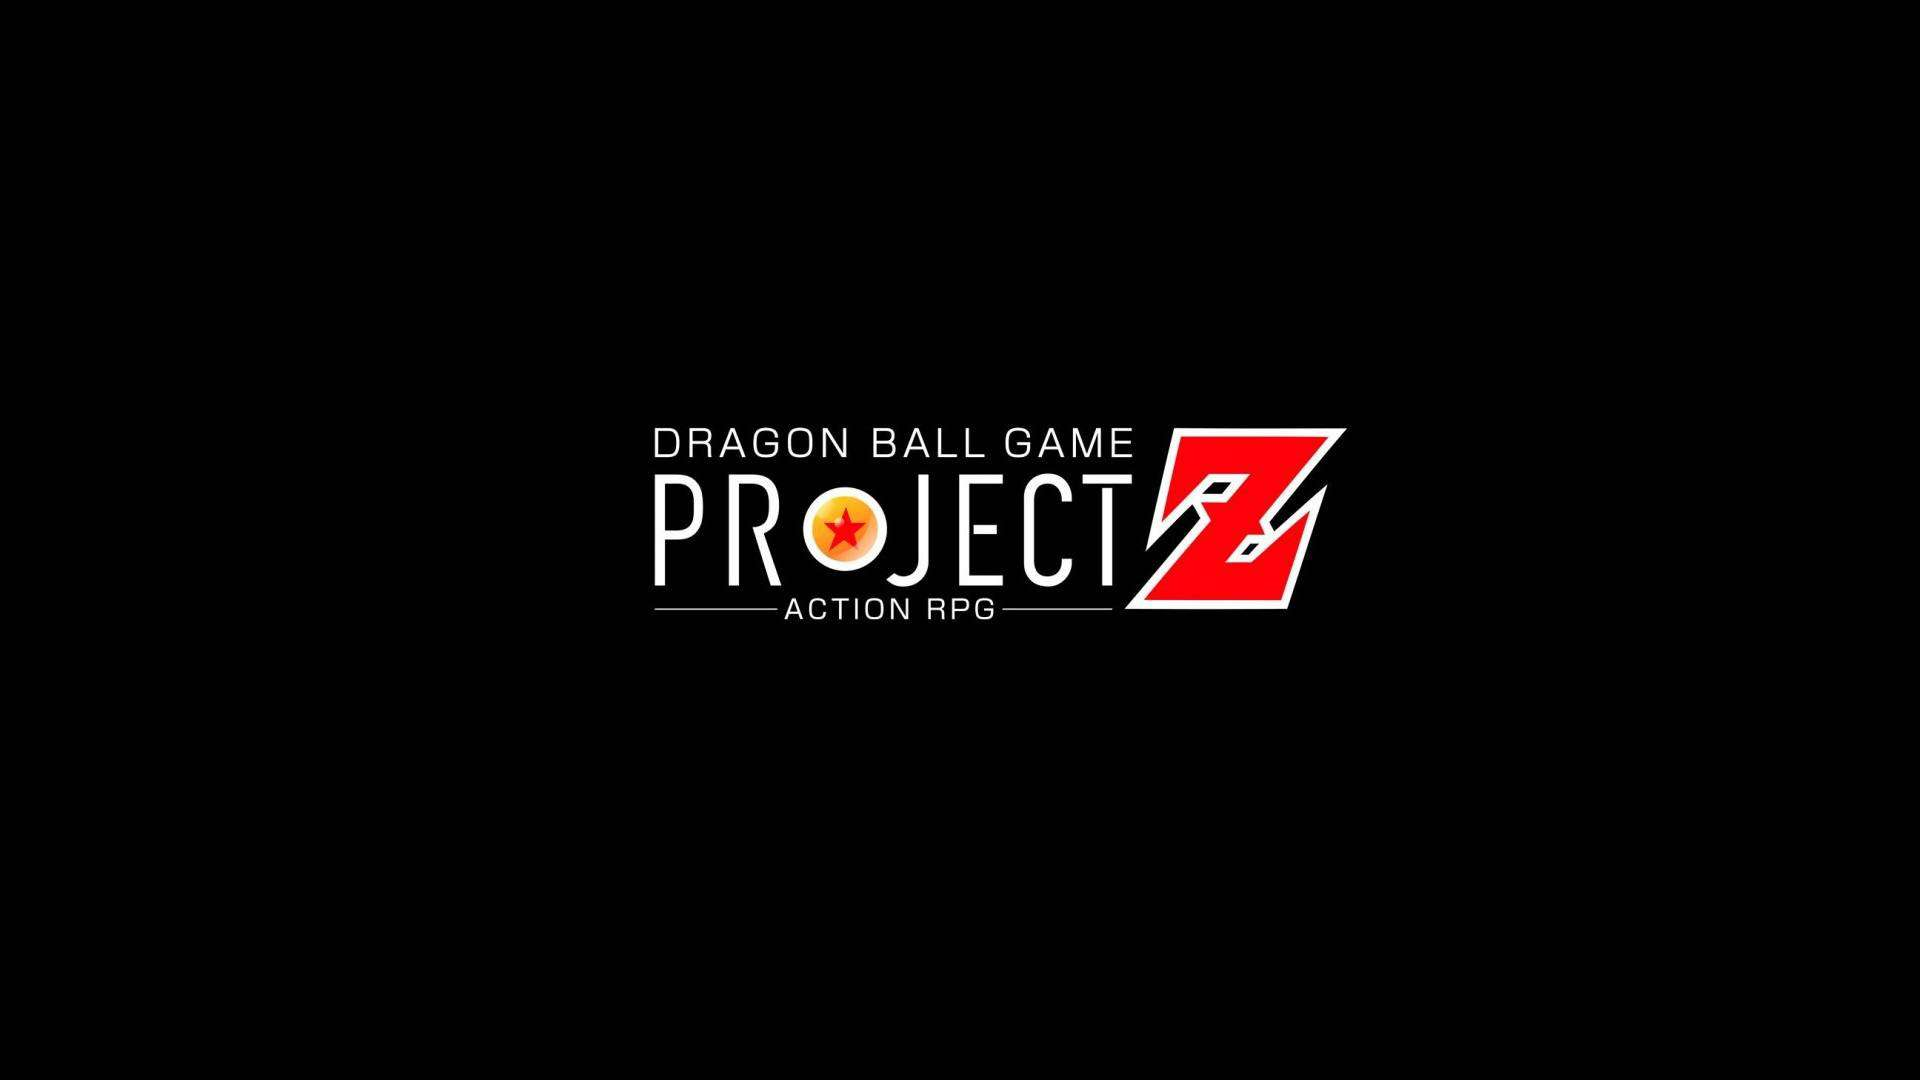 dragon-ball-project-z-2019-14737.1920x1080